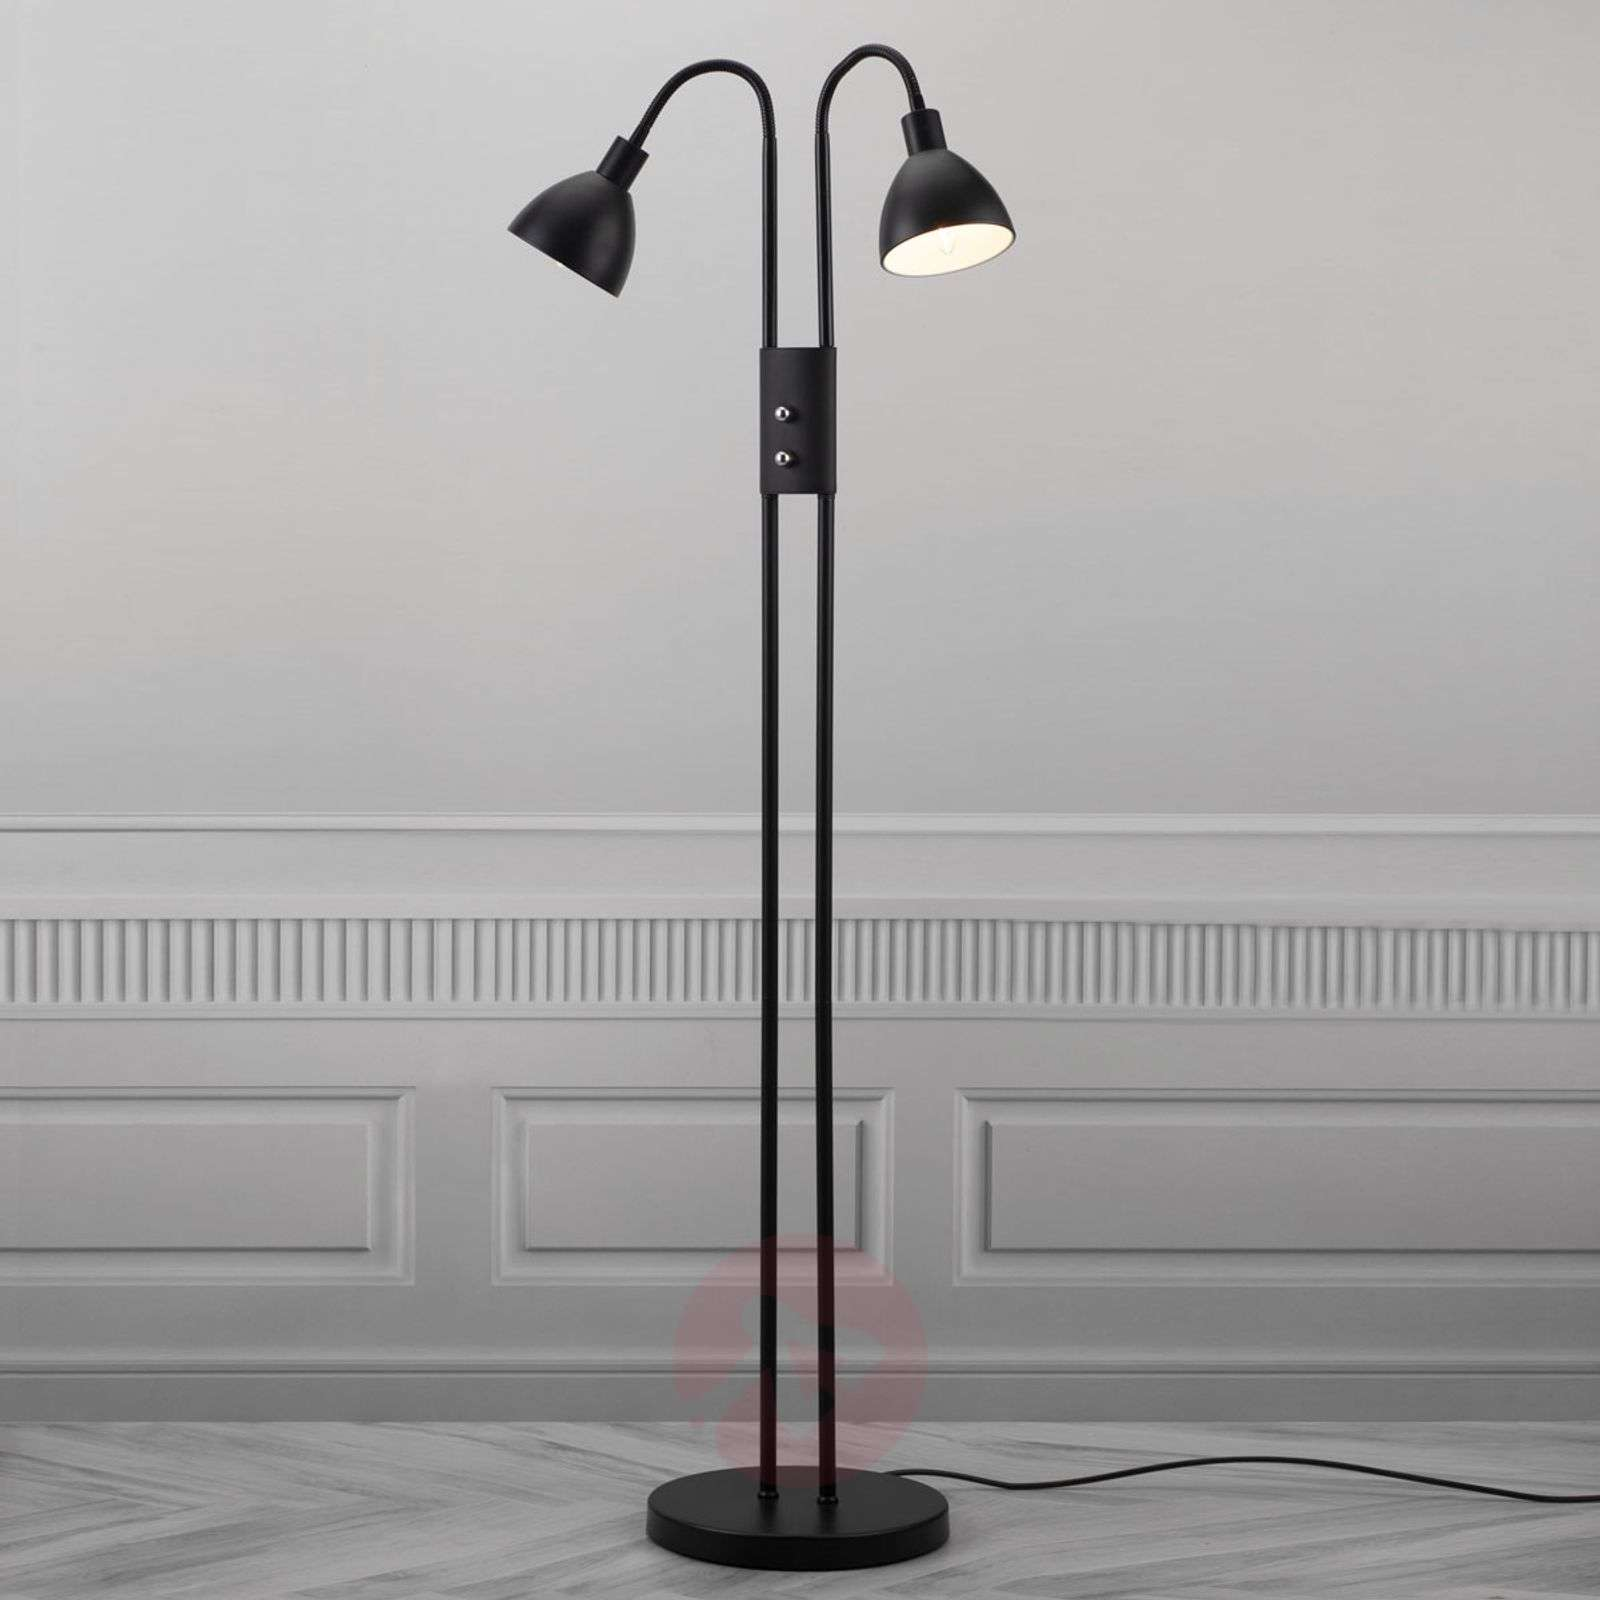 Separately switchable Ray floor lamp with dimmer-7005987-03